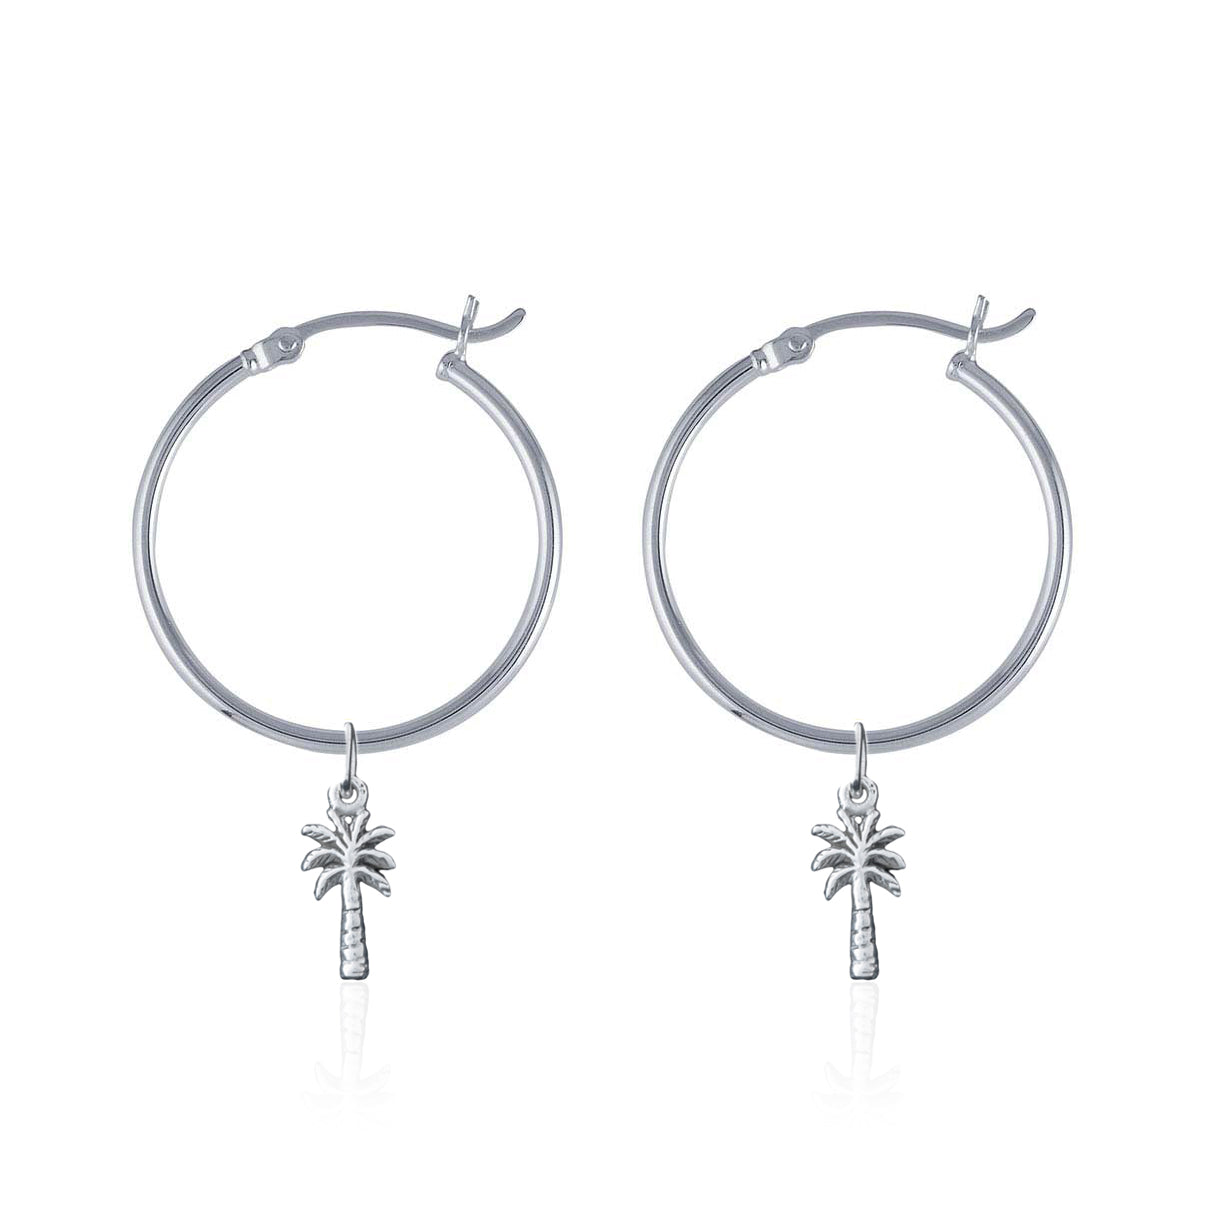 La Luna Rose Sterling Silver Tube Hoop Earrings with Palm Tree Charms